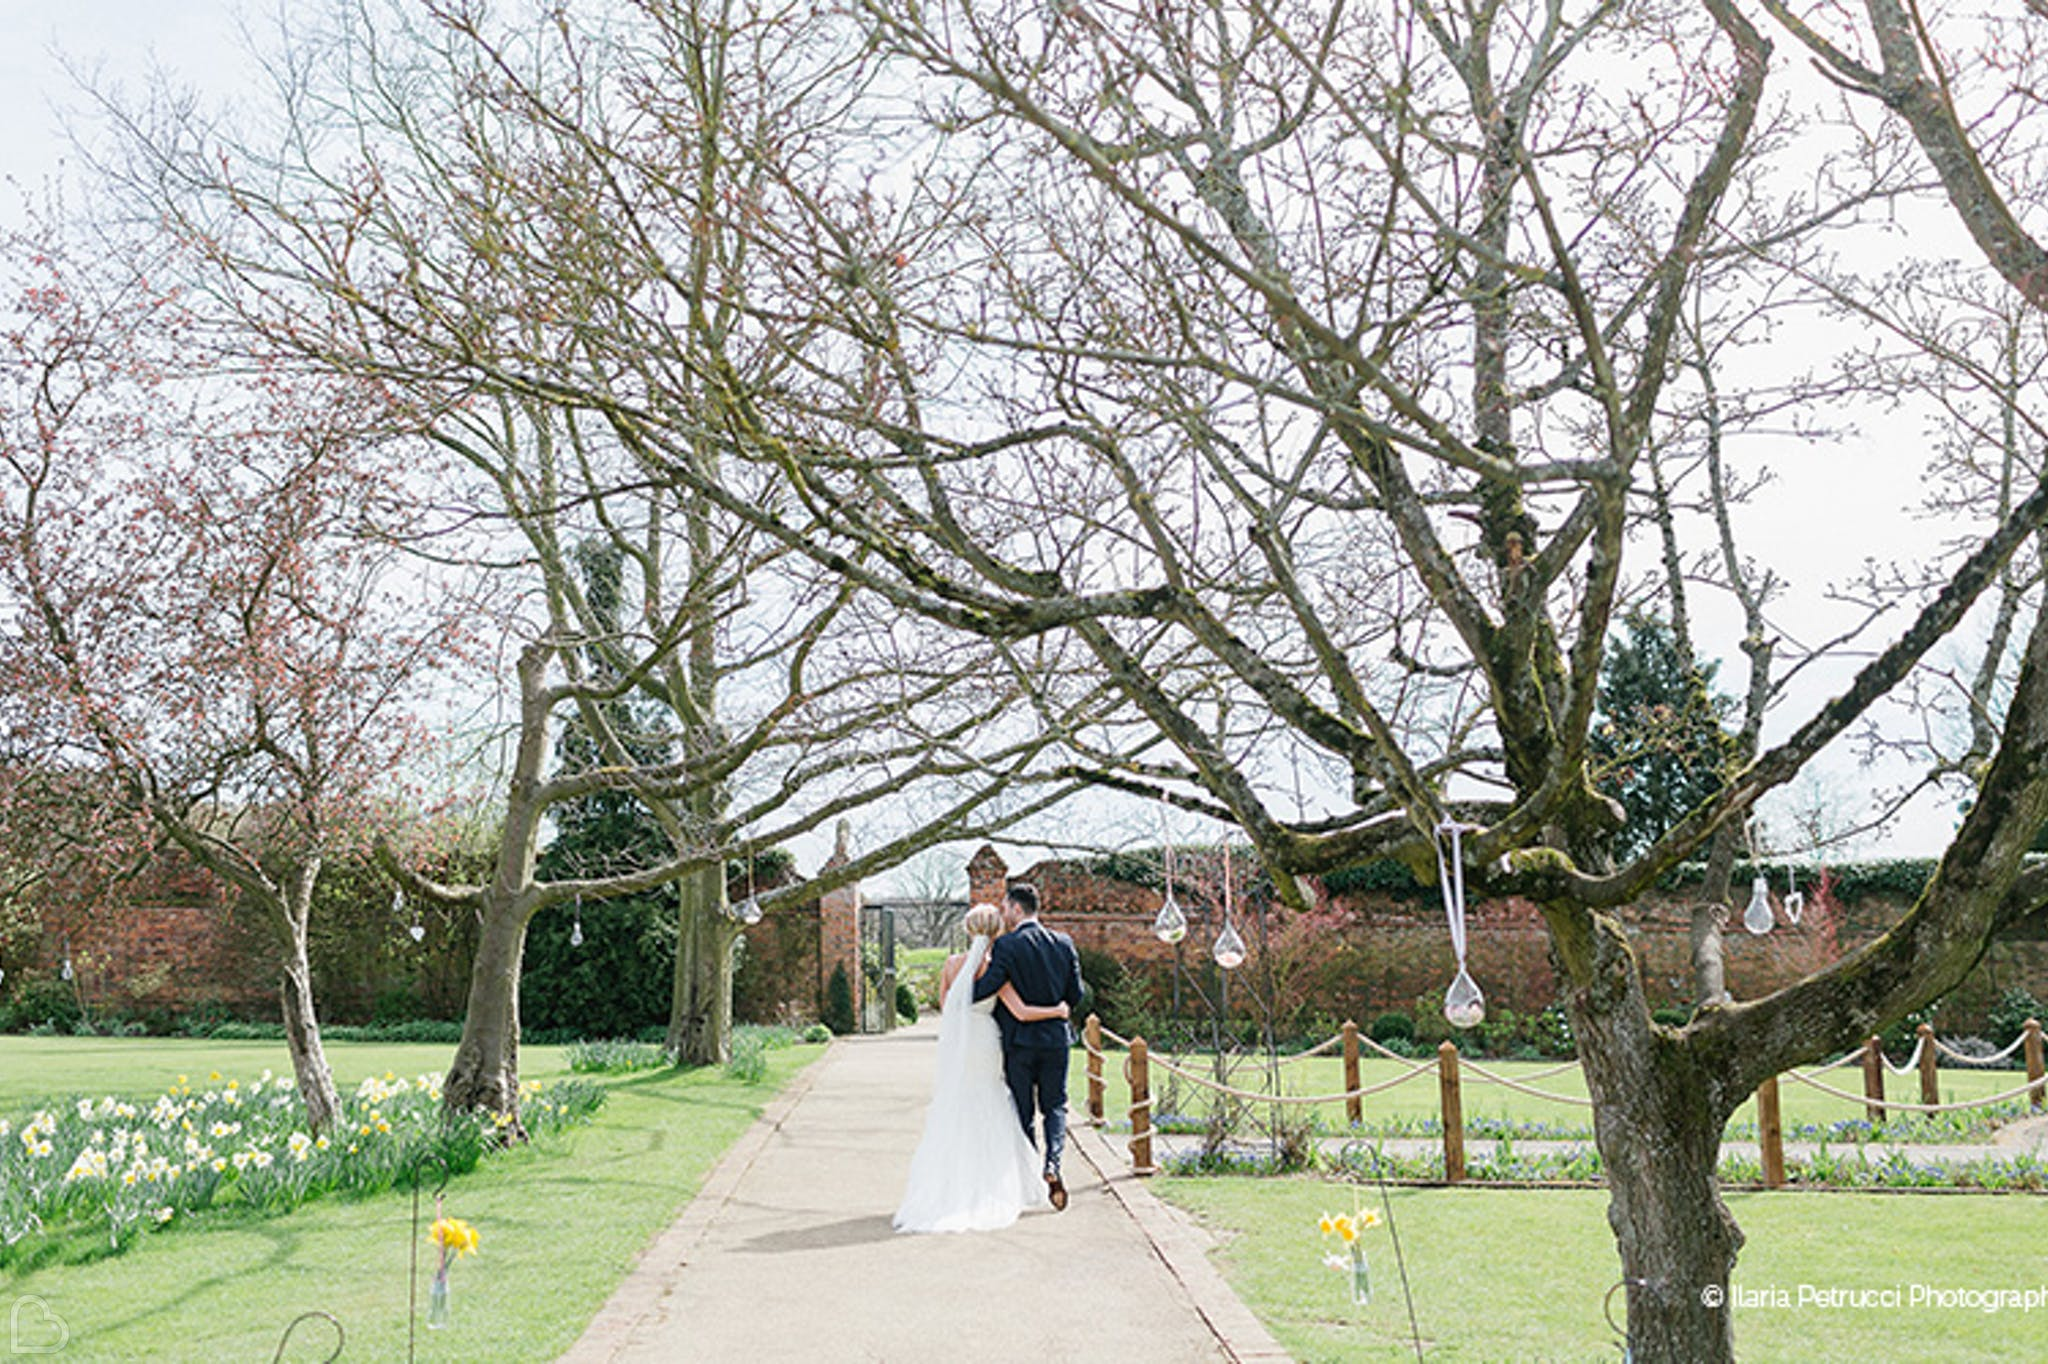 Newlyweds walking through Gaynes Park wedding venue in Essex